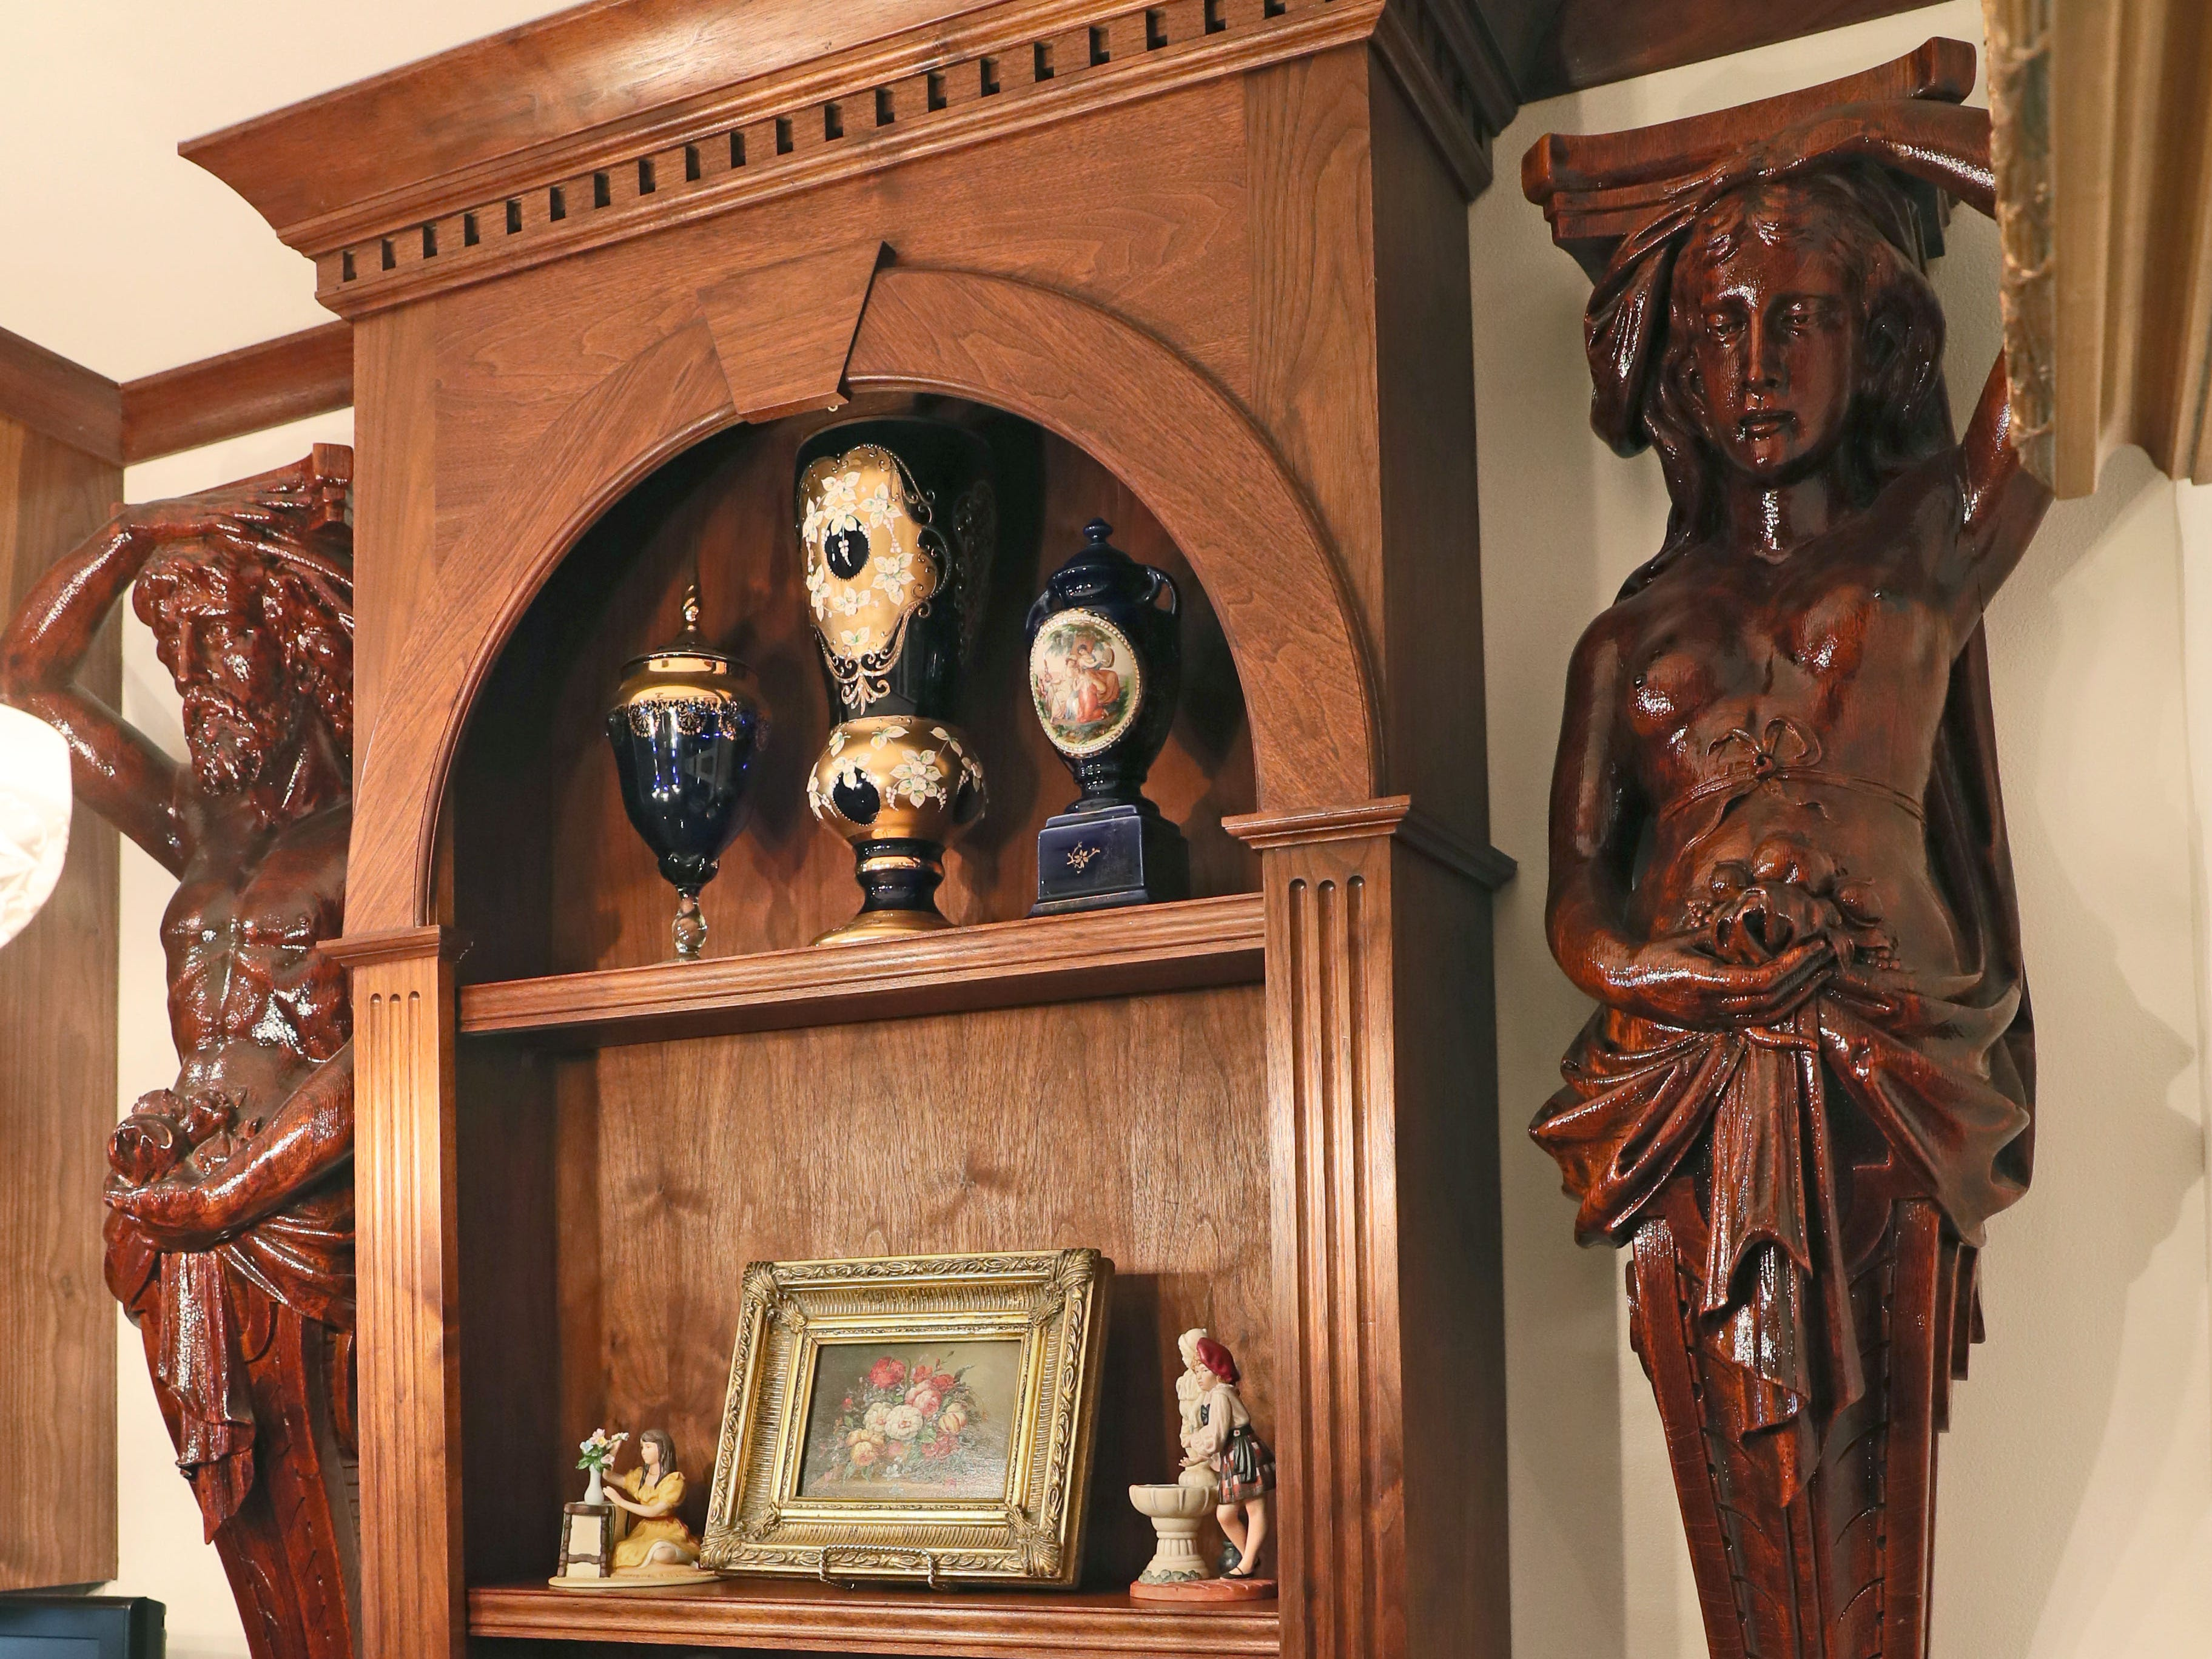 These hand-carved wood statues of a man and a woman, now in the Wissings'  kitchen, came from the Brumder mansion that was at 17th and Wisconsin.